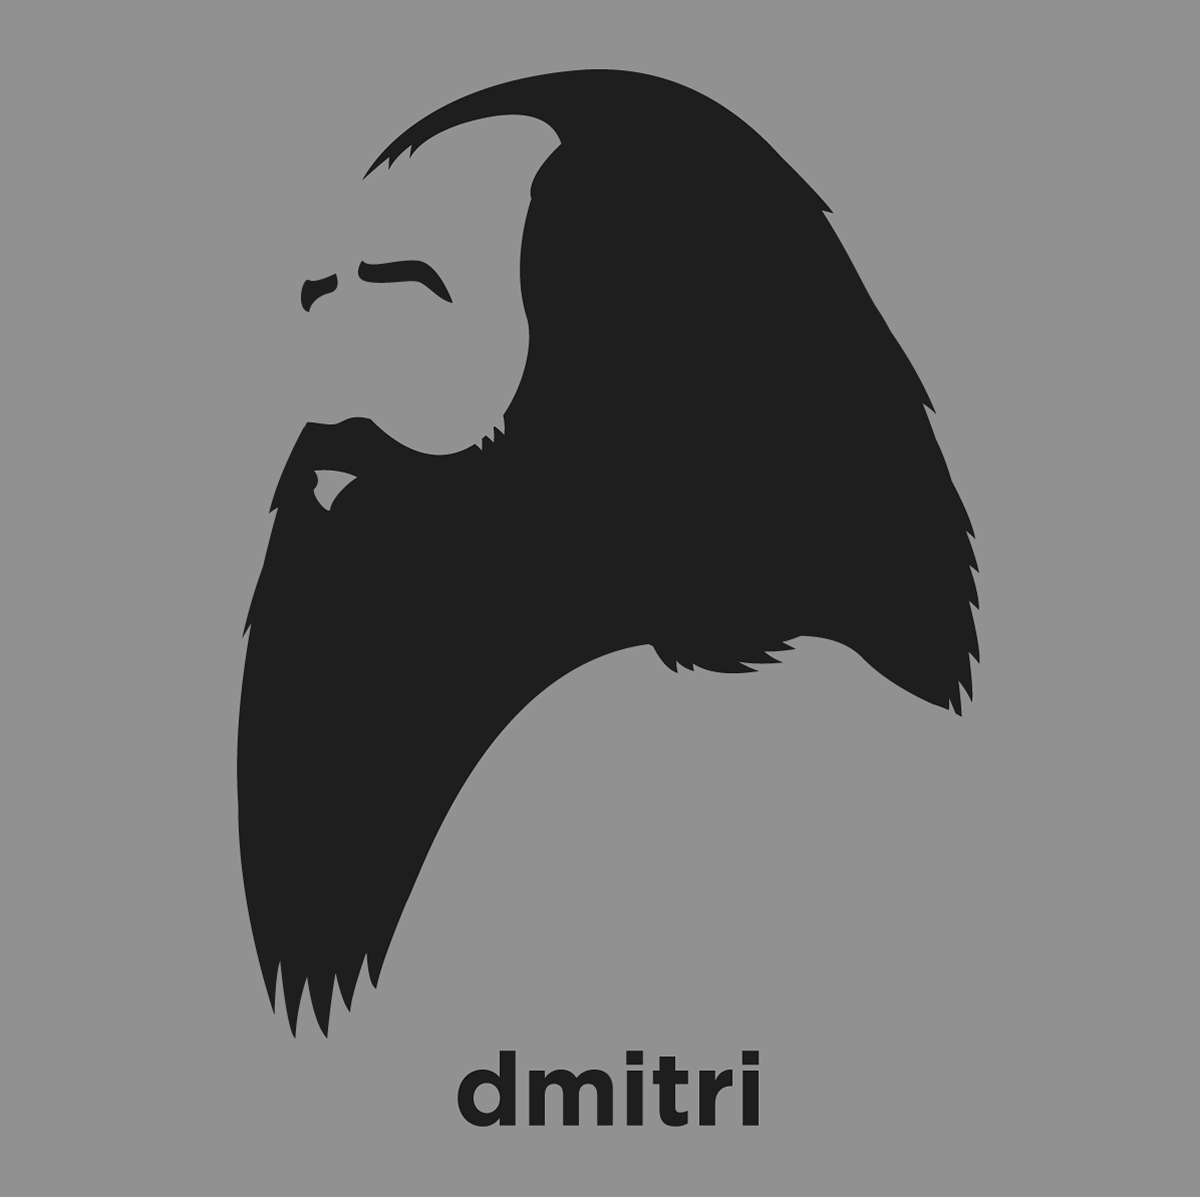 Dmitri mendeleev shirt from hirsute history a t shirt with a minimalist hair based illustration of dmitri mendeleev russian chemist gamestrikefo Choice Image